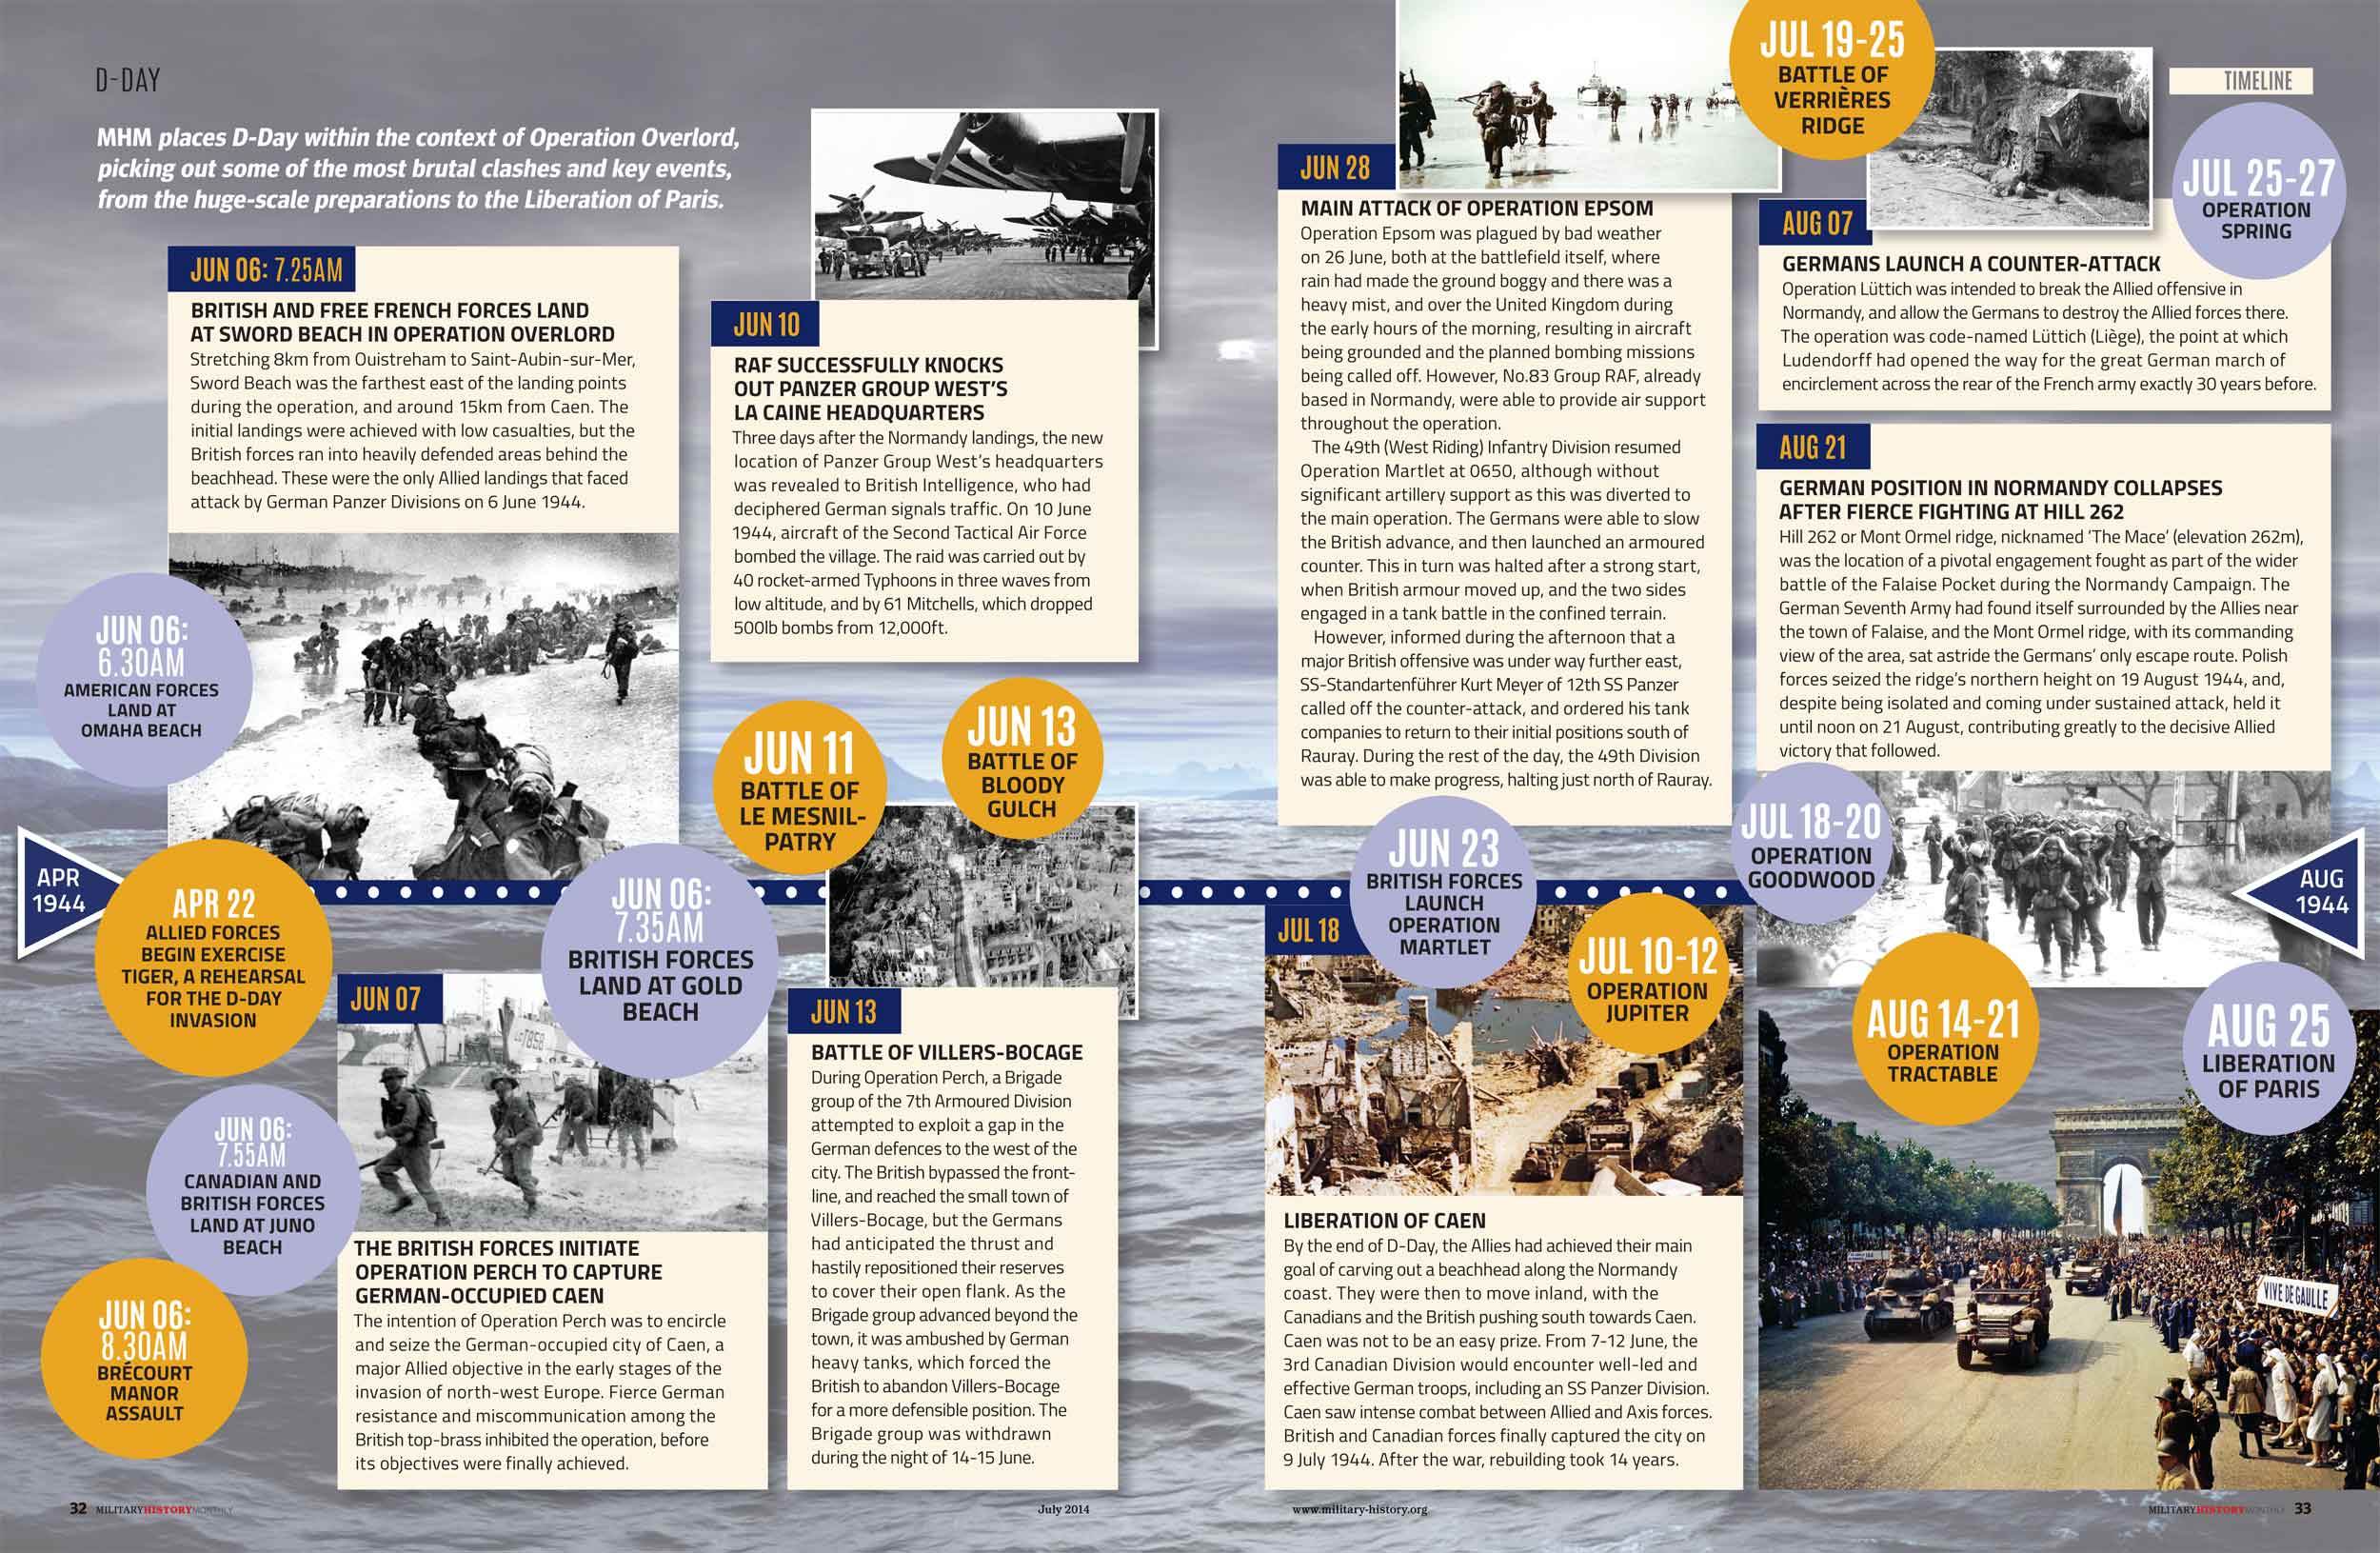 a history of the d day The us army remembers june 6, 1944: the world war ii d-day invasion of normandy, france.